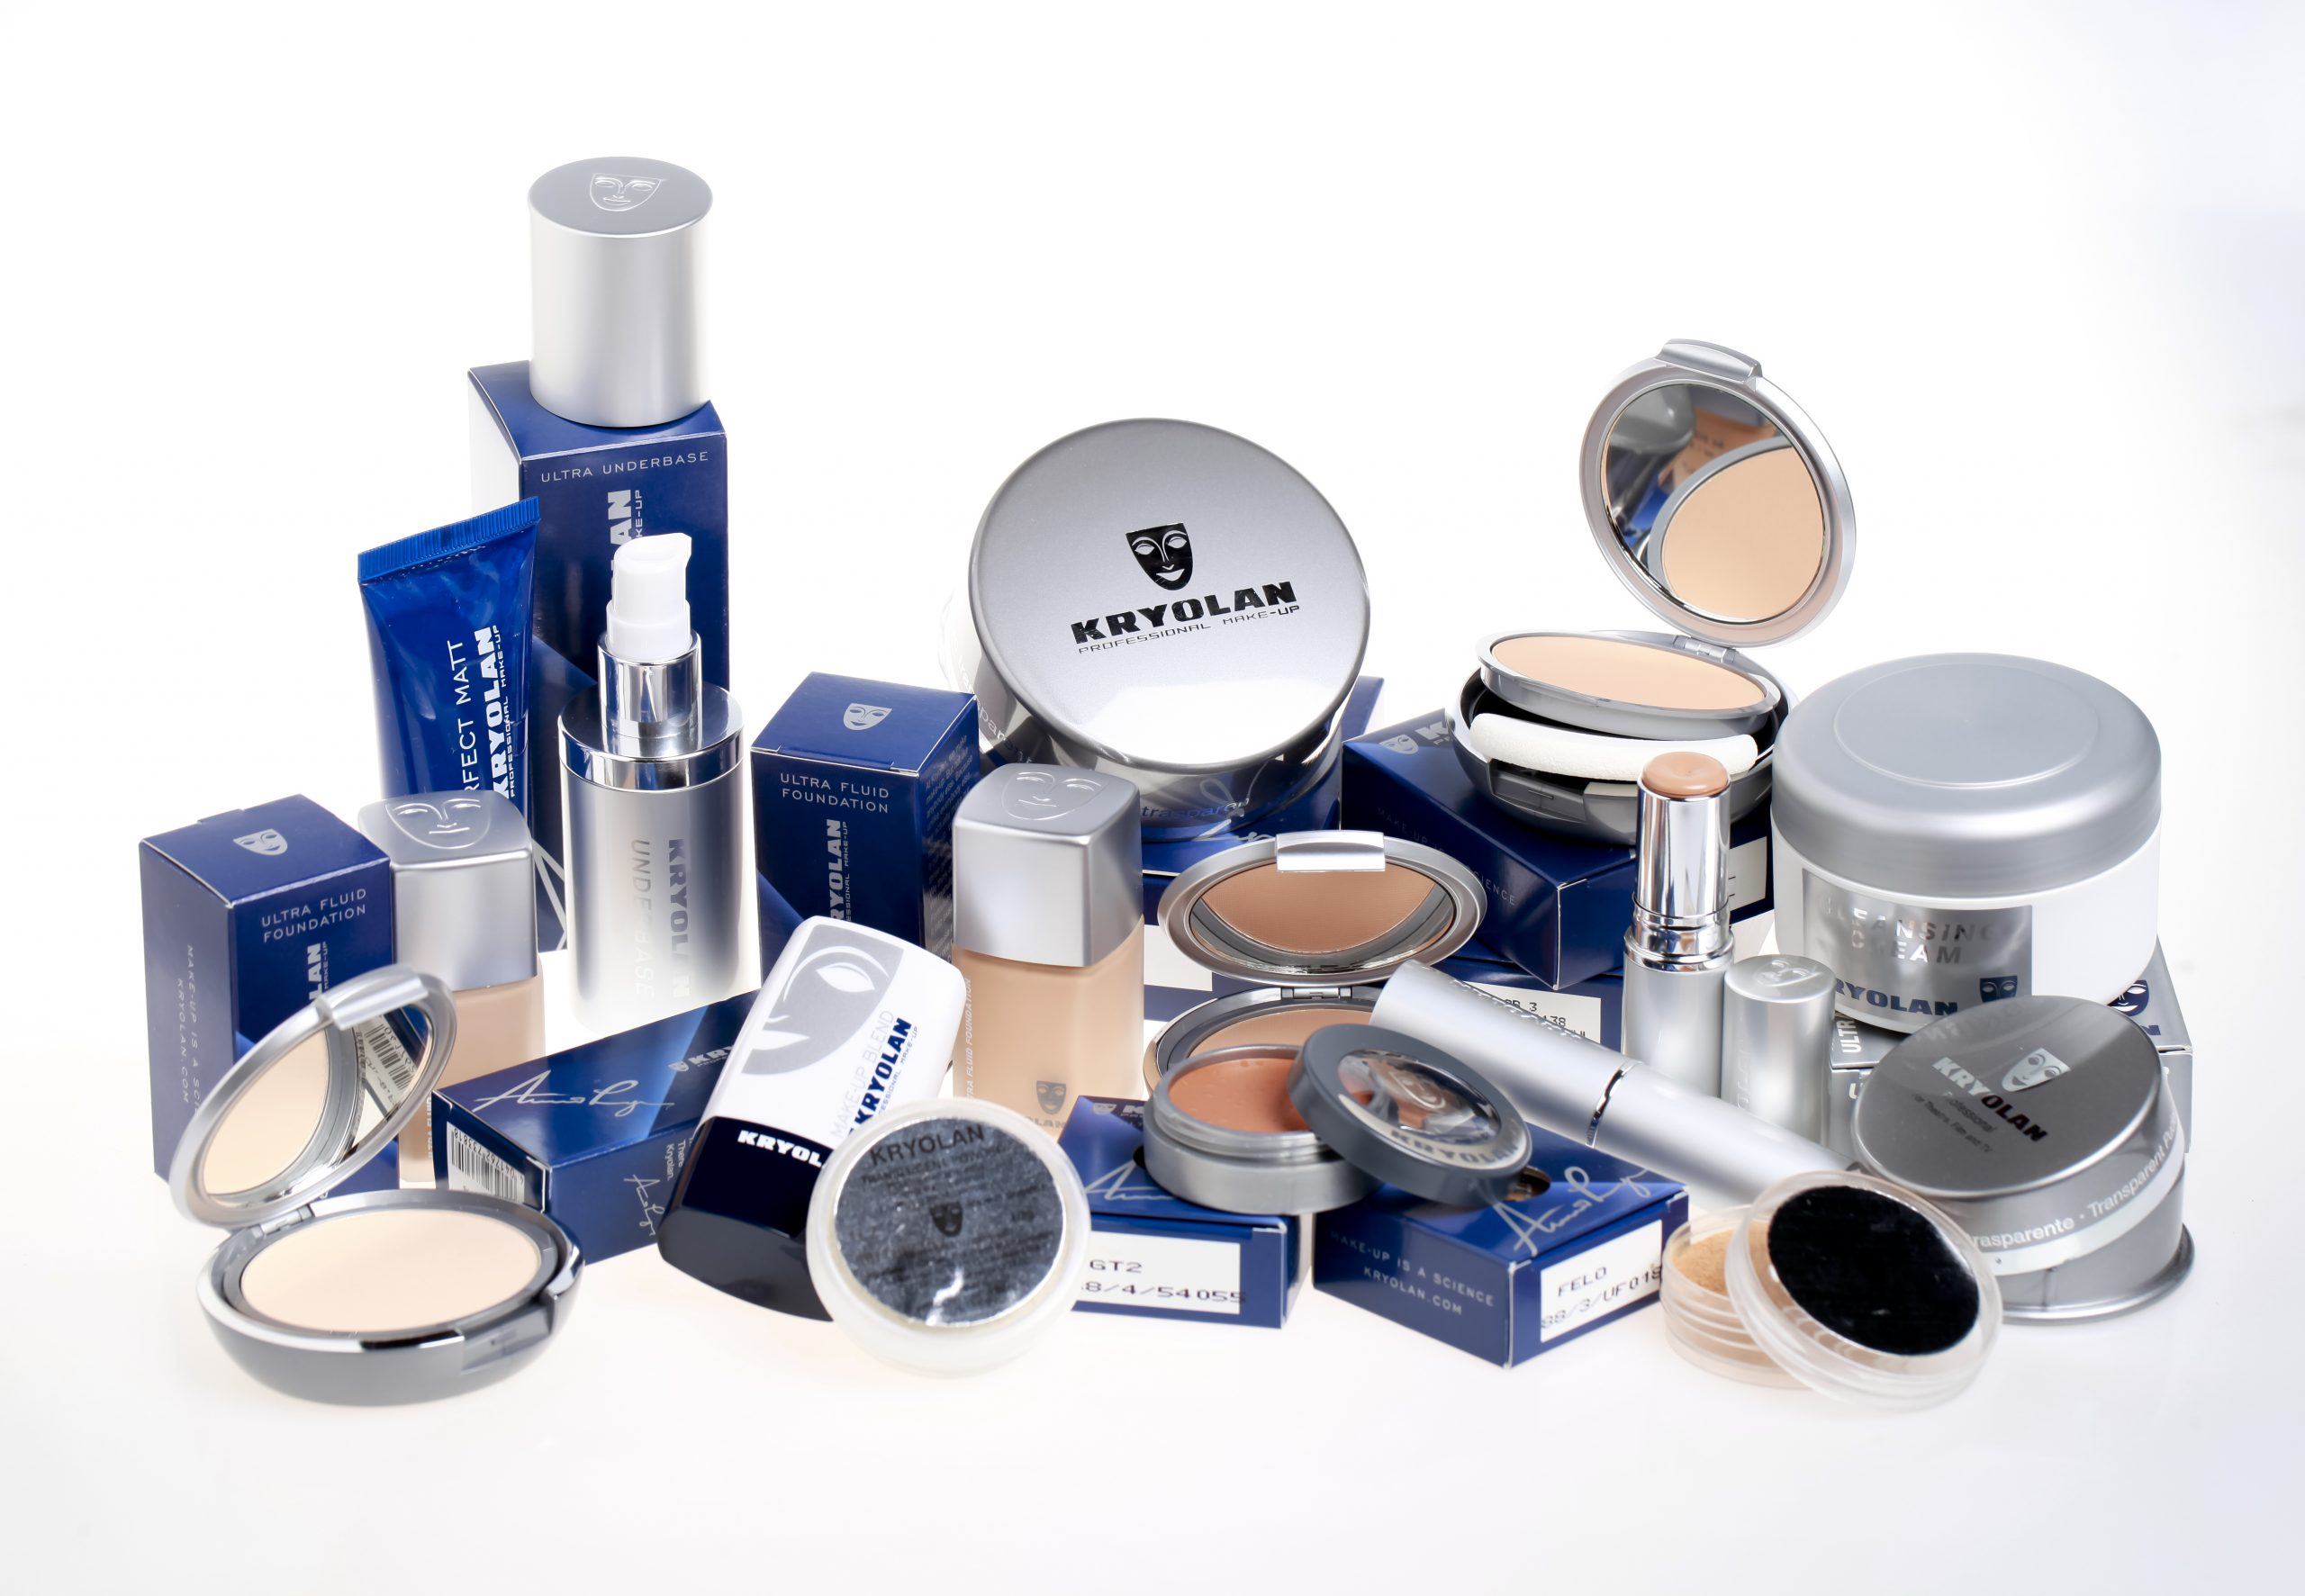 Kryolan Make-up products